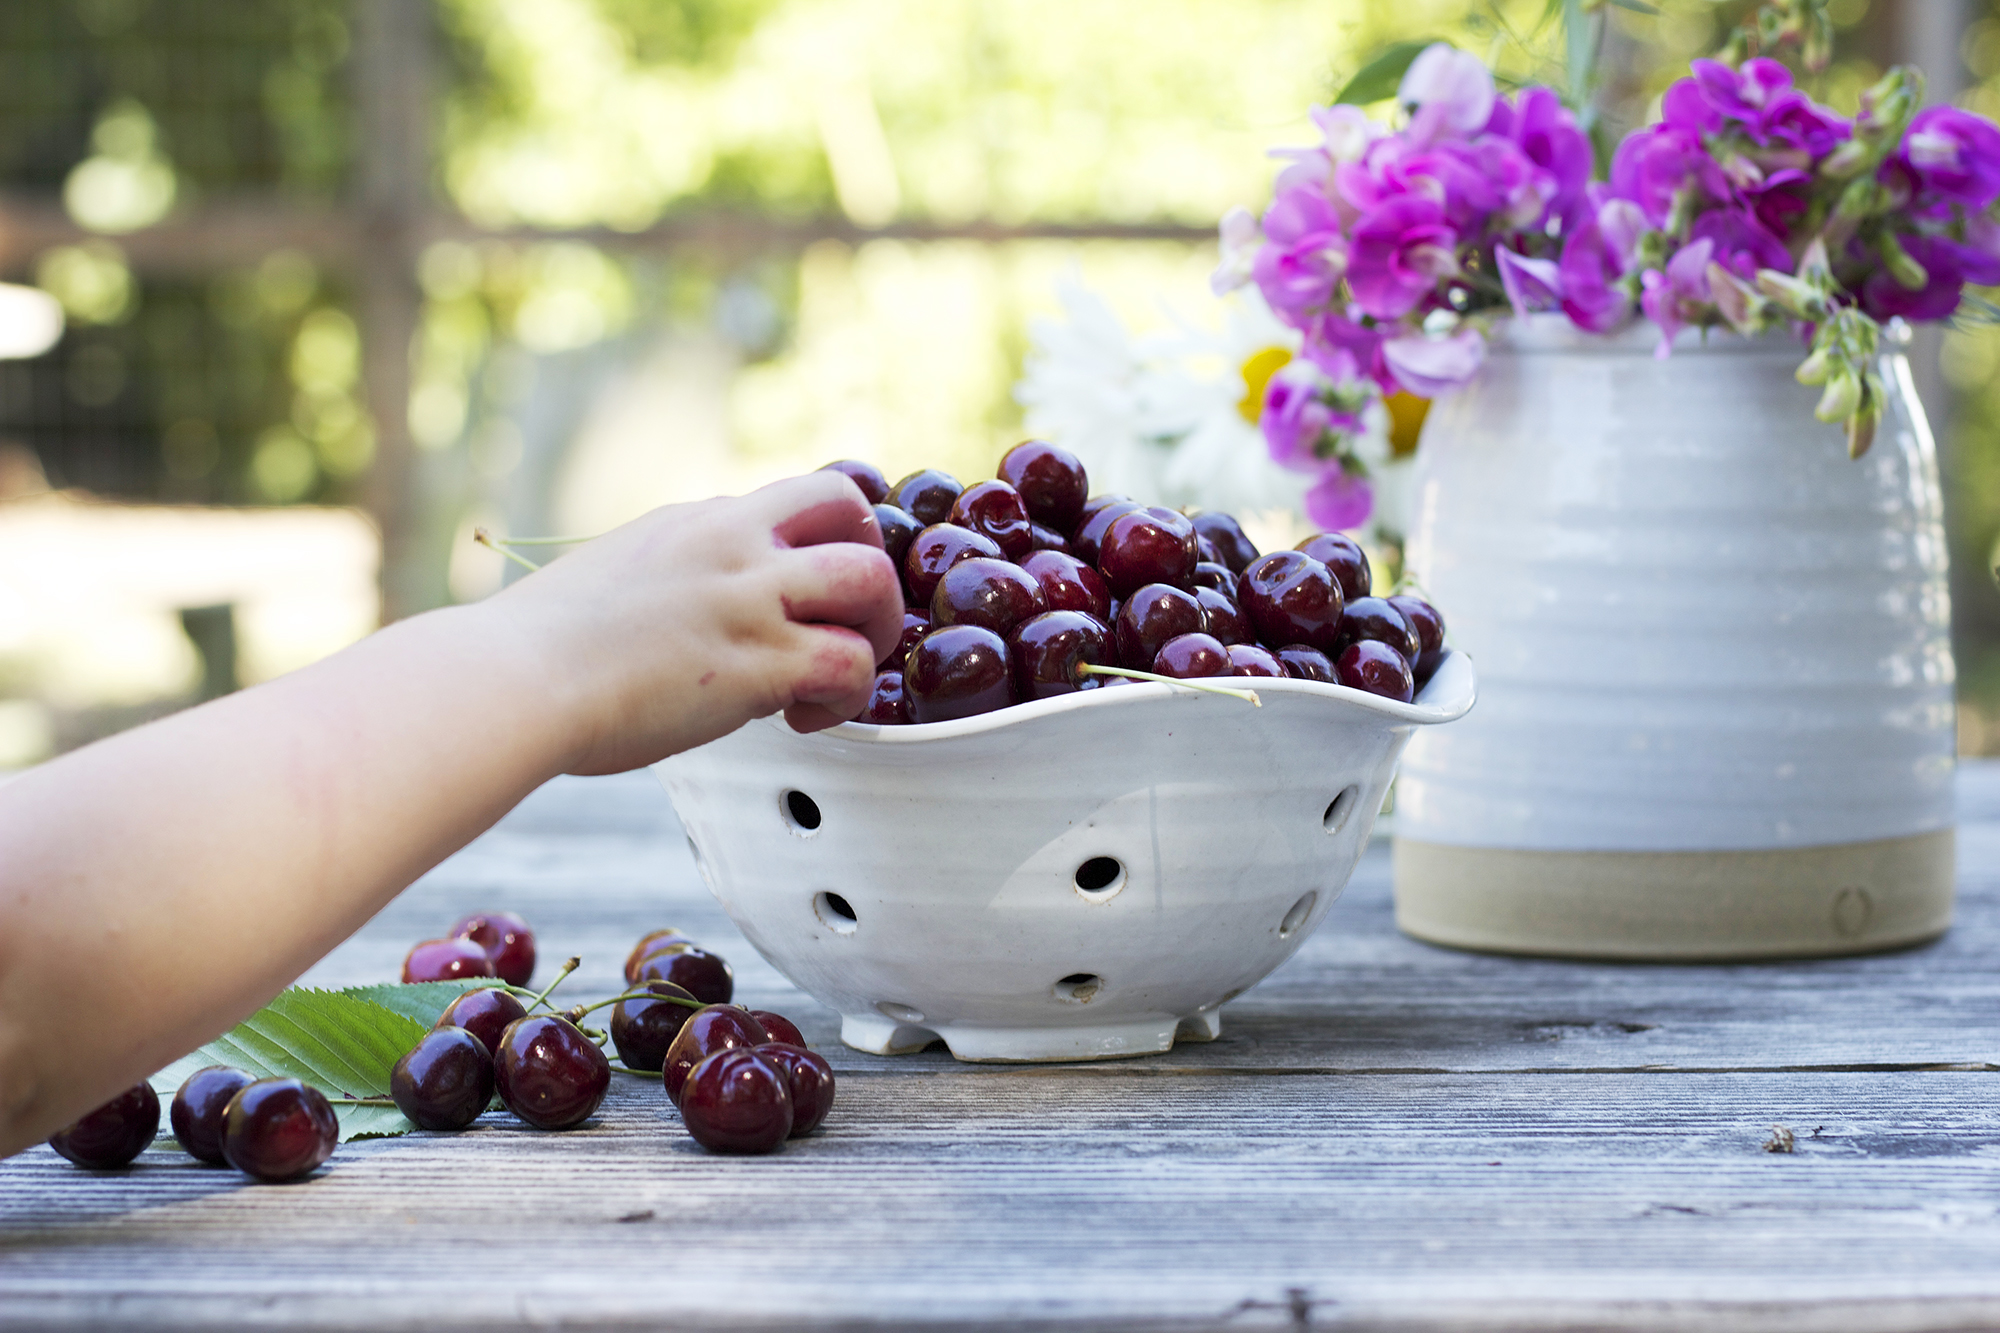 The-Grit-and-Polish-Farmhouse-Cherries-and-Hand.jpg